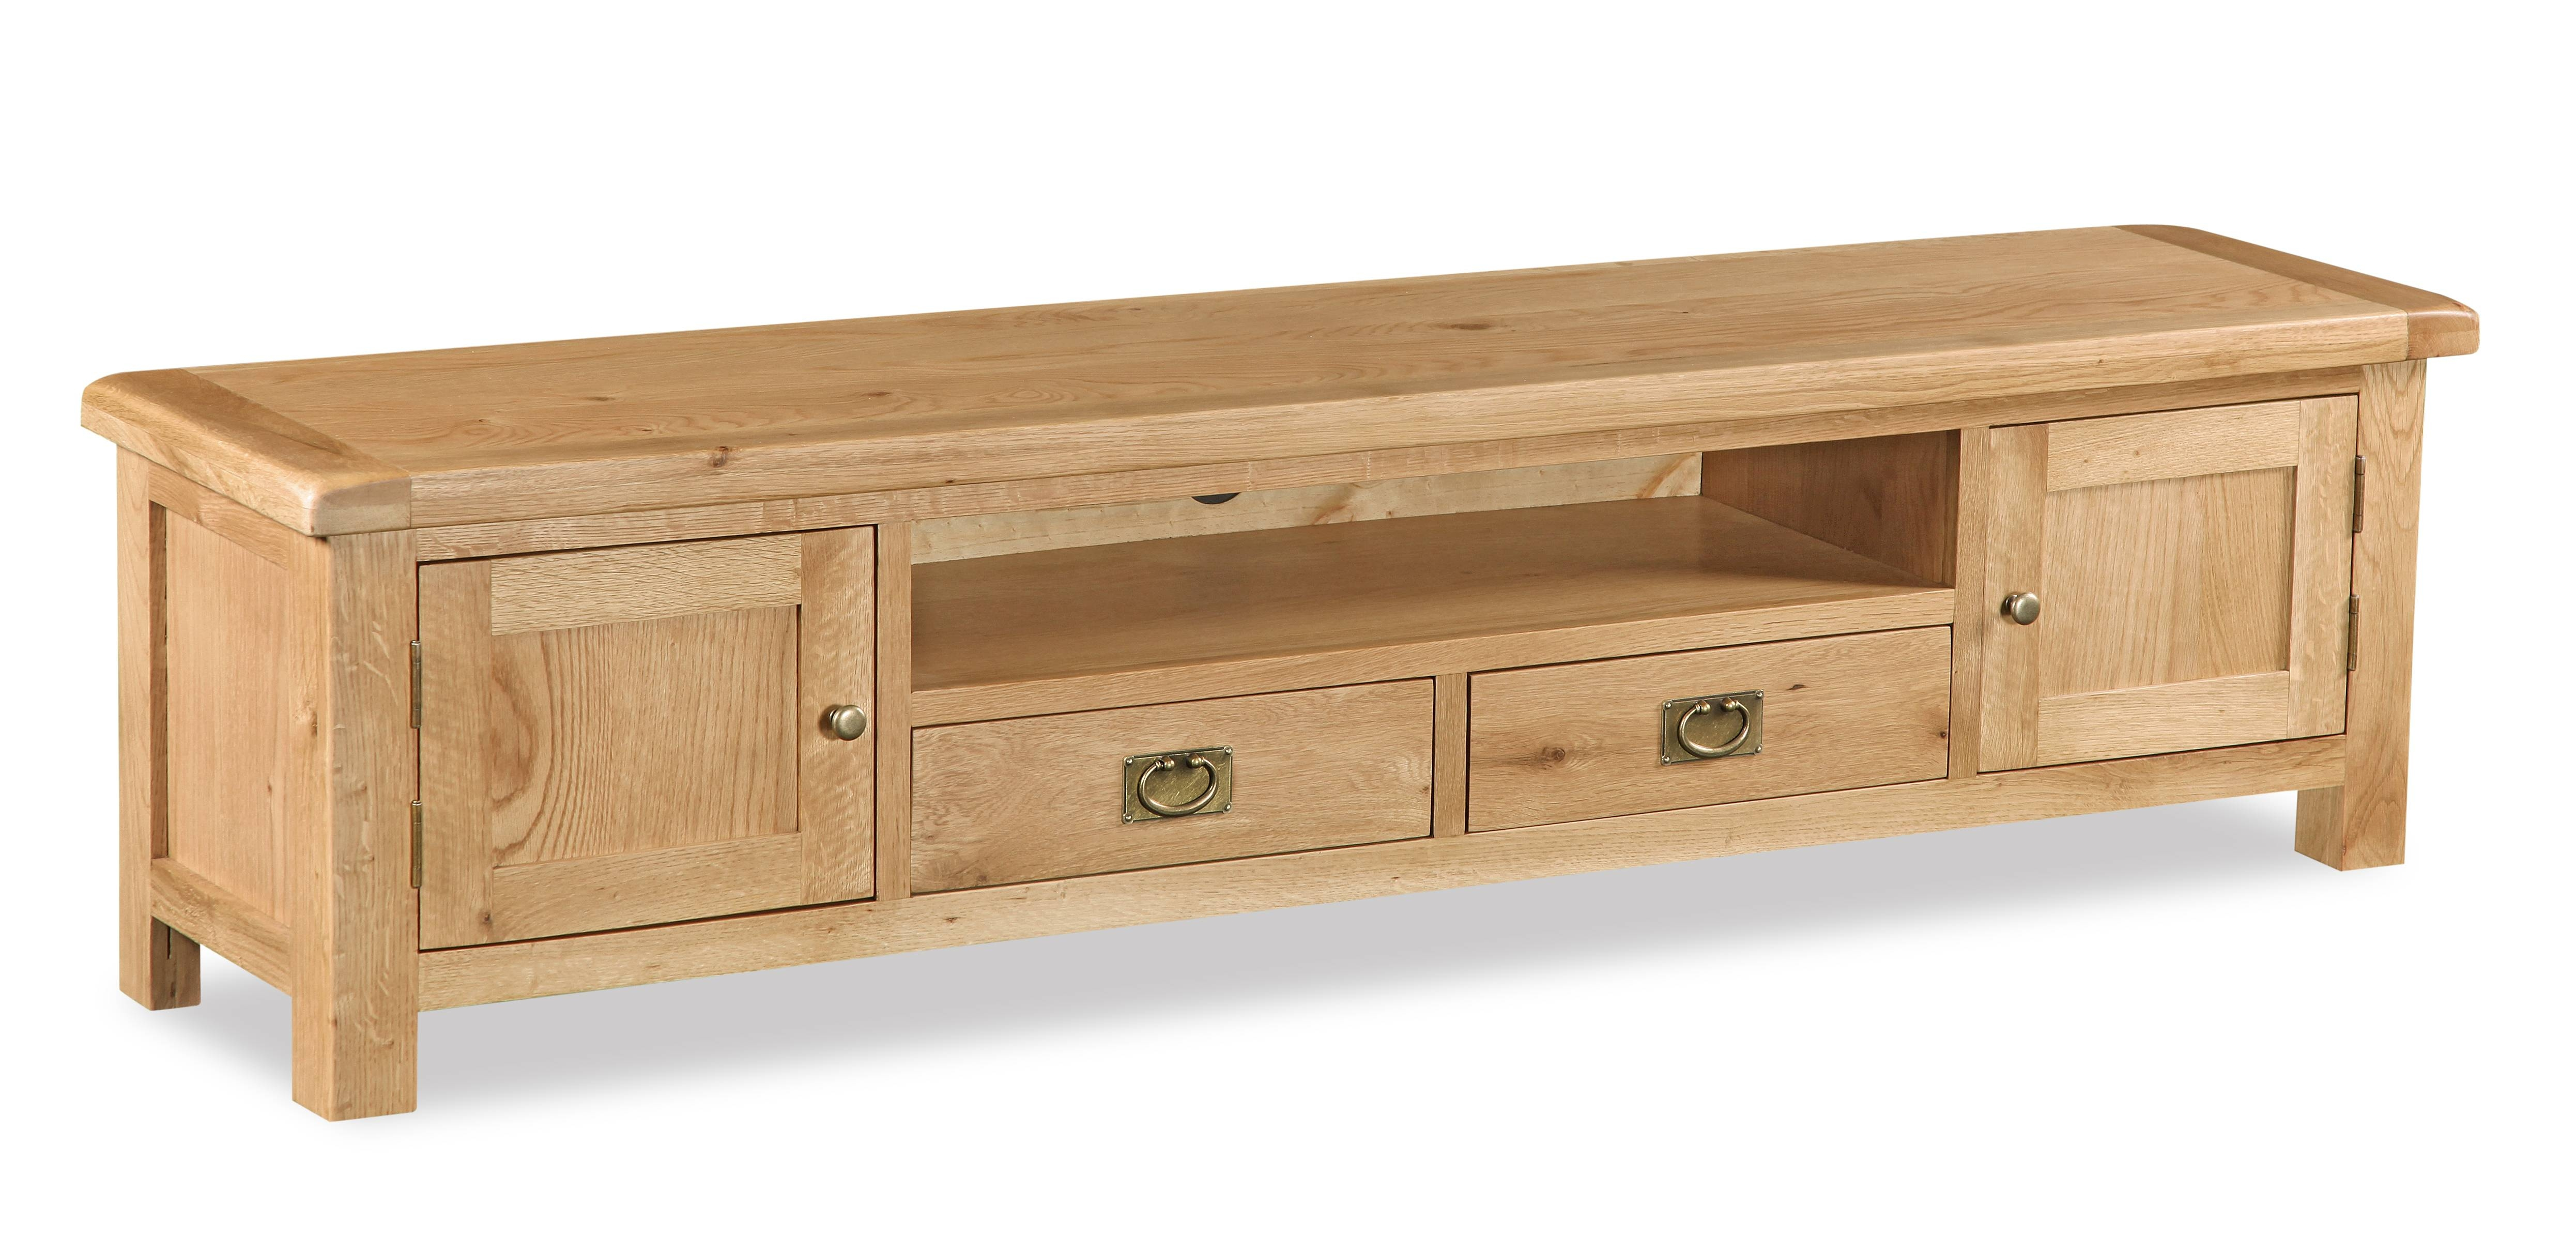 Weldon Oak Extra Wide Low Line Tv Unit - Gosforth Furniture with Low Tv Units (Image 14 of 15)